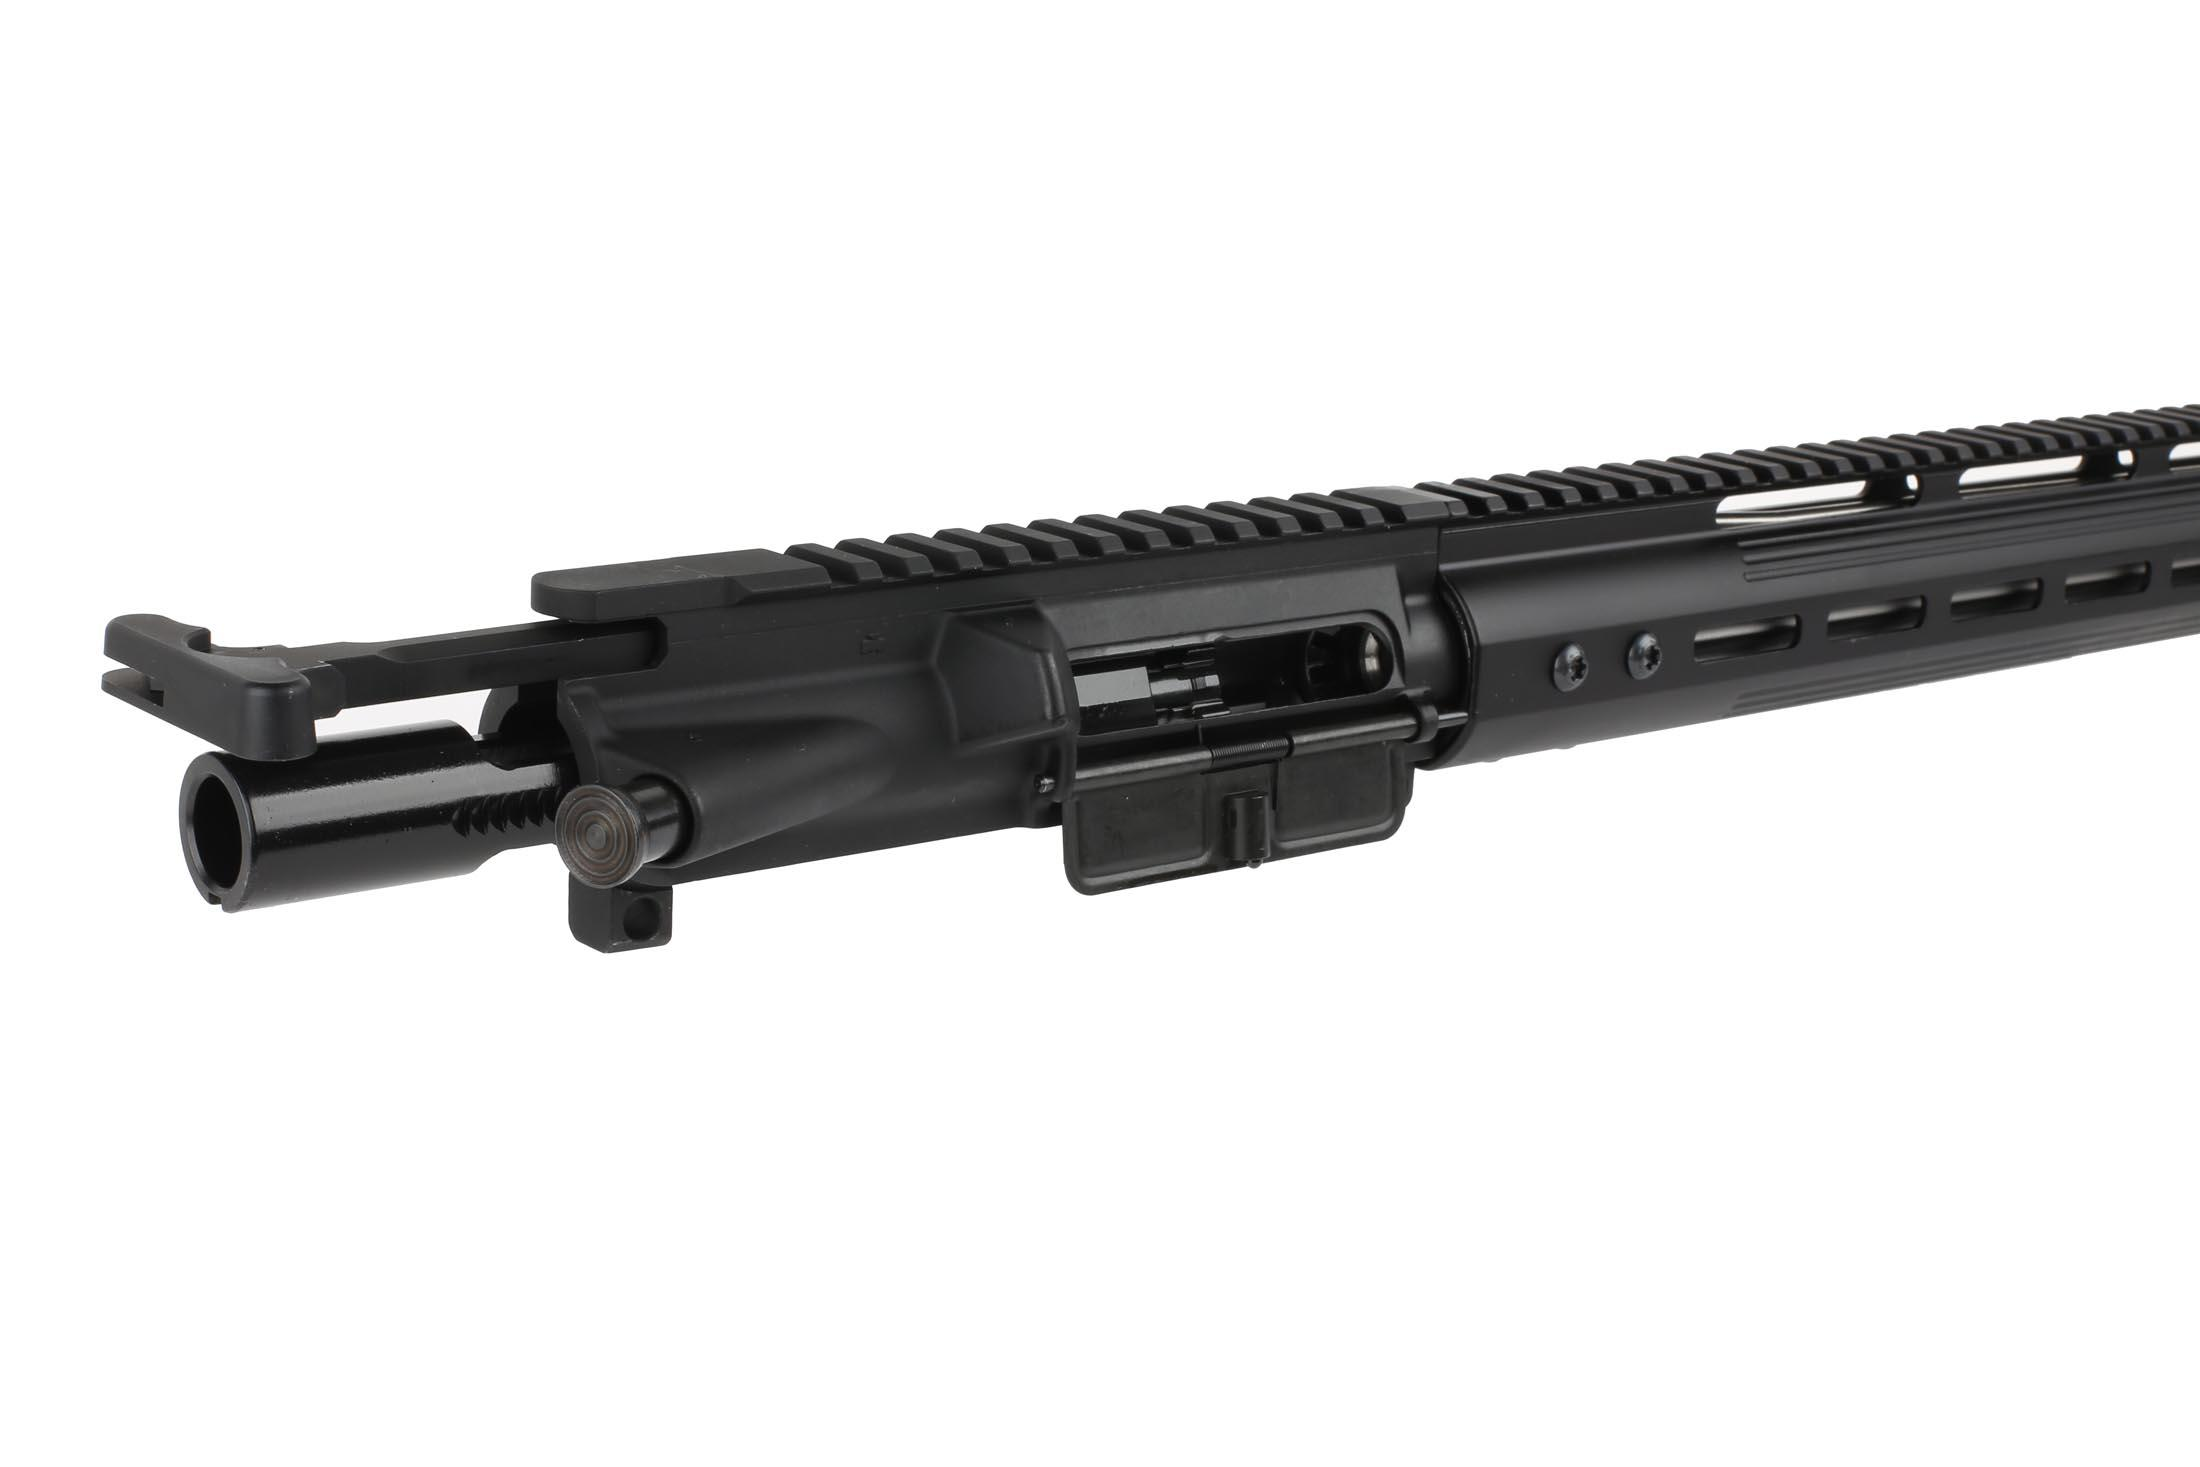 "Bear Creek Arsenal 20 6.5 Grendel Type II Straight Fluted Stainless Steel Complete Upper with 15"" M-LOK Rail"